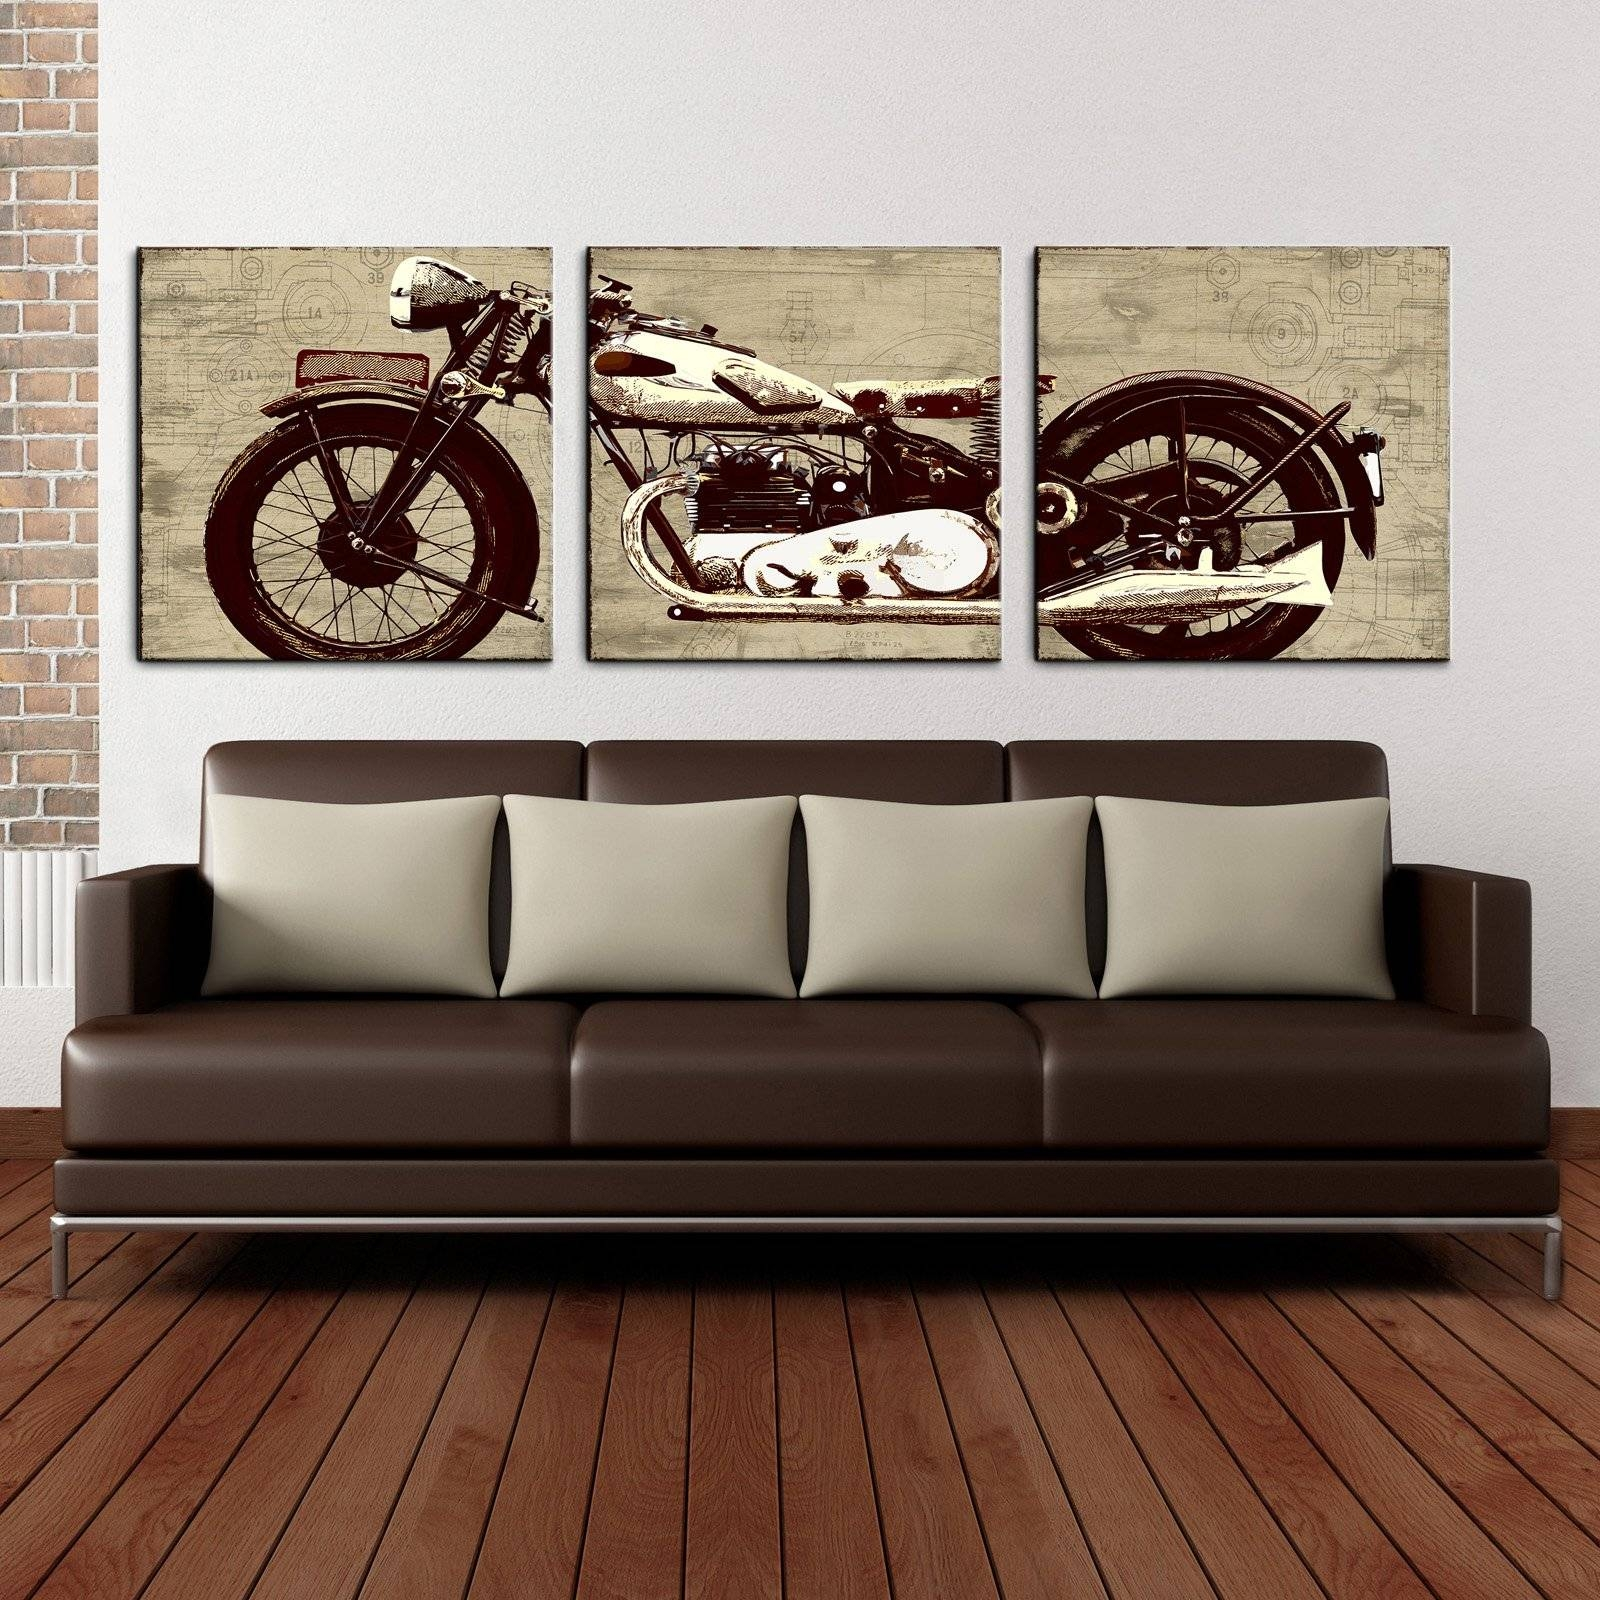 Motorcycle 24 X 72 Canvas Art Print Triptych | Hayneedle With Regard To Current Motorcycle Metal Wall Art (View 6 of 20)